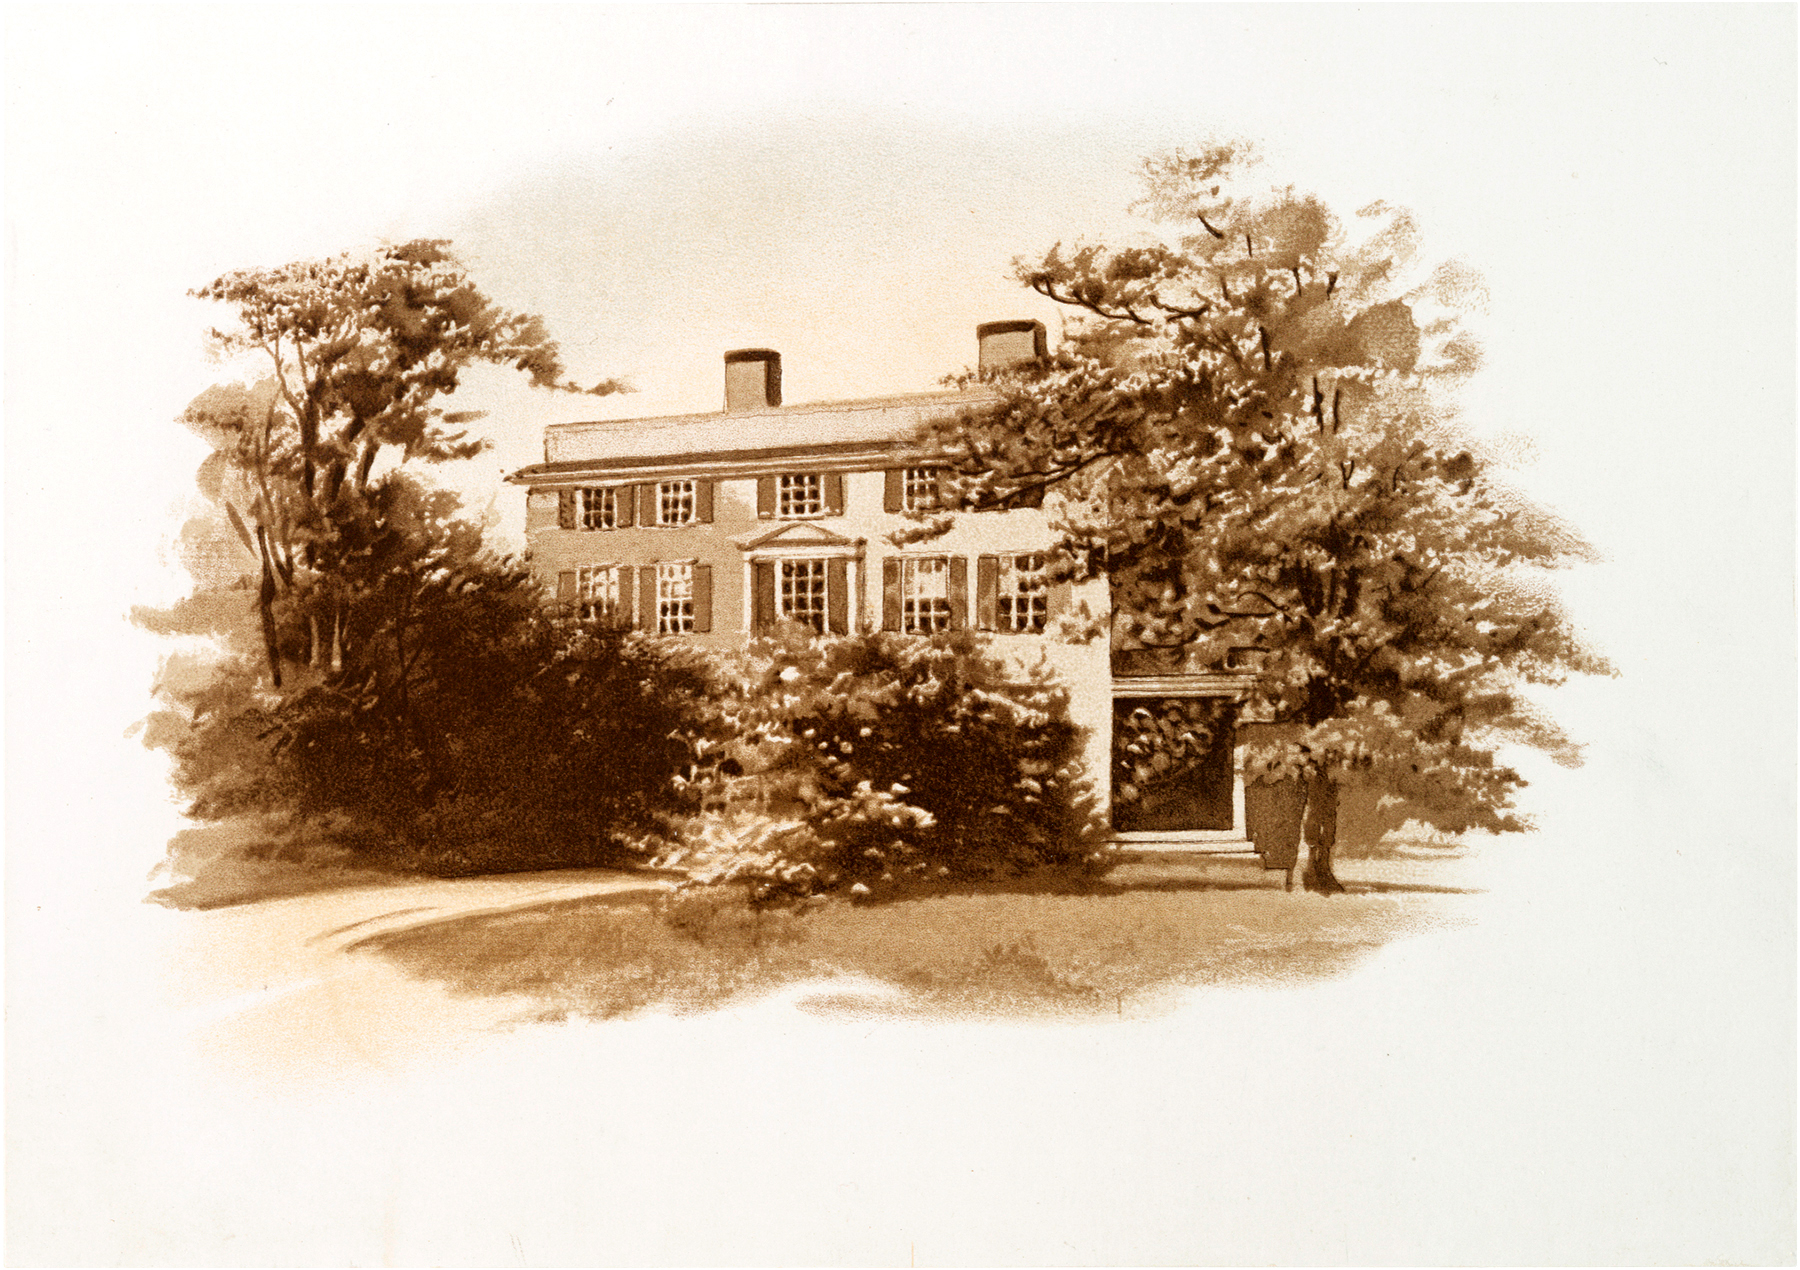 Vintage Image of Sketched House